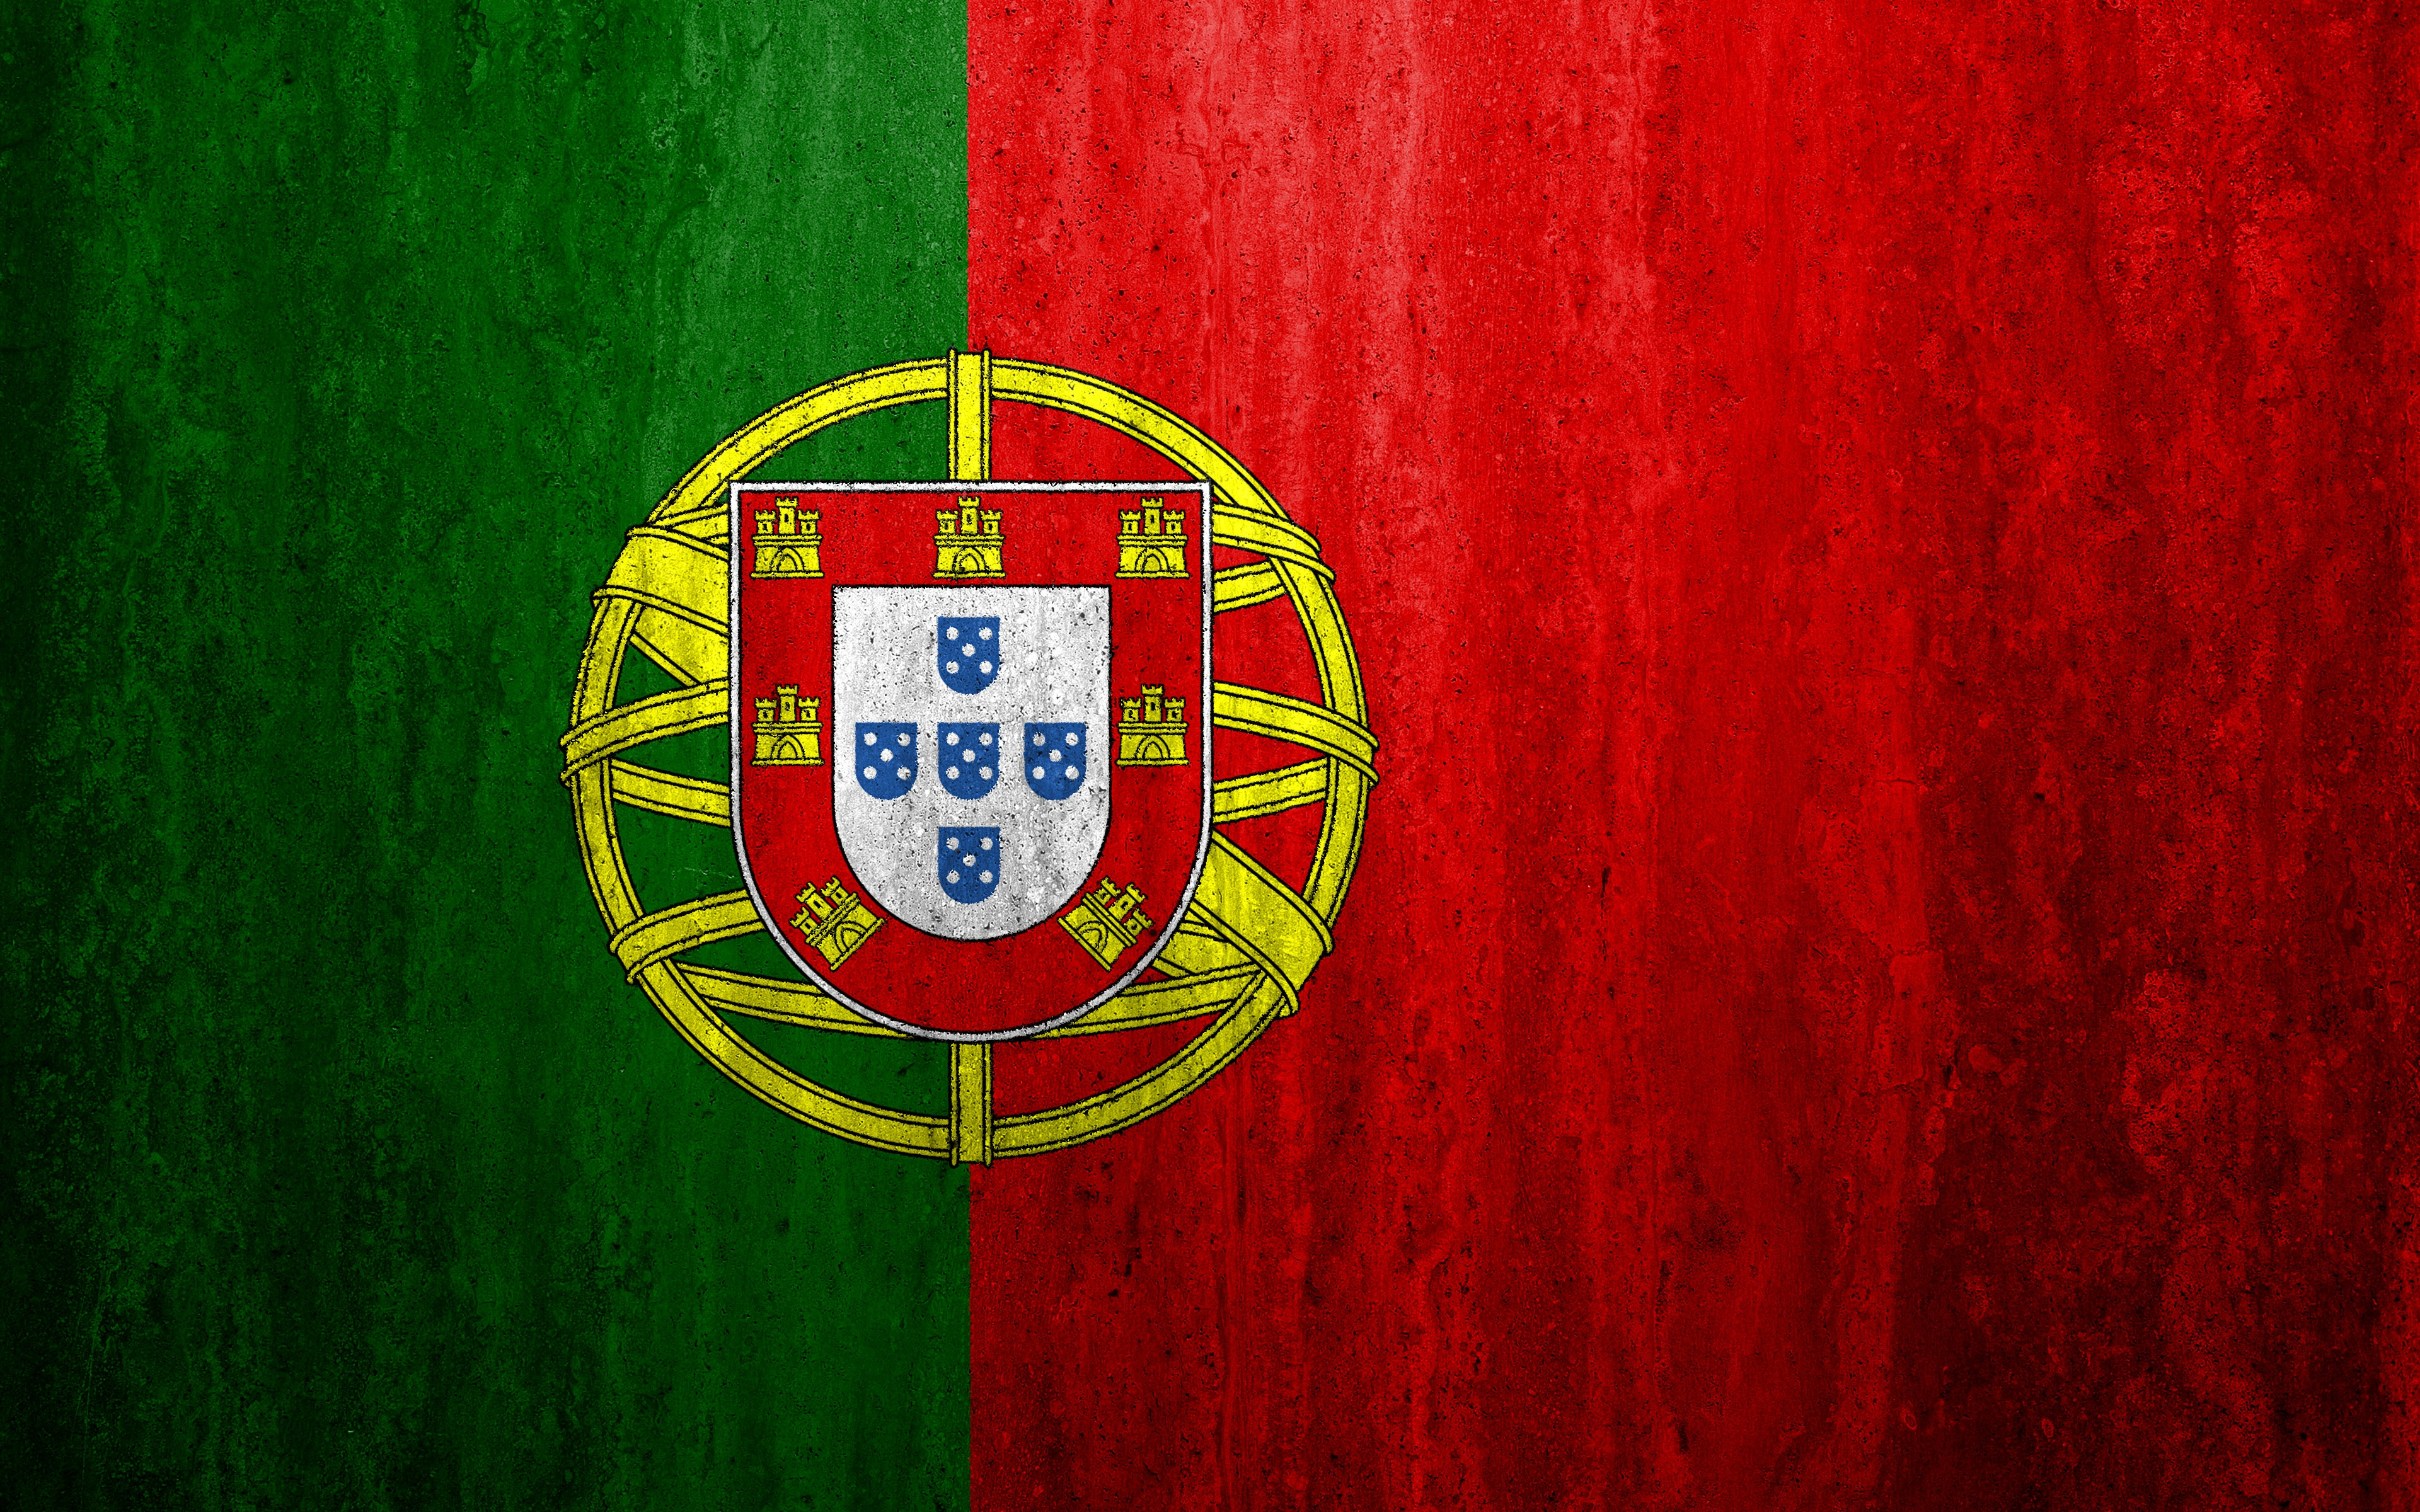 Flag Of Portugal 4k Ultra HD Wallpaper Background Image 3840x2400